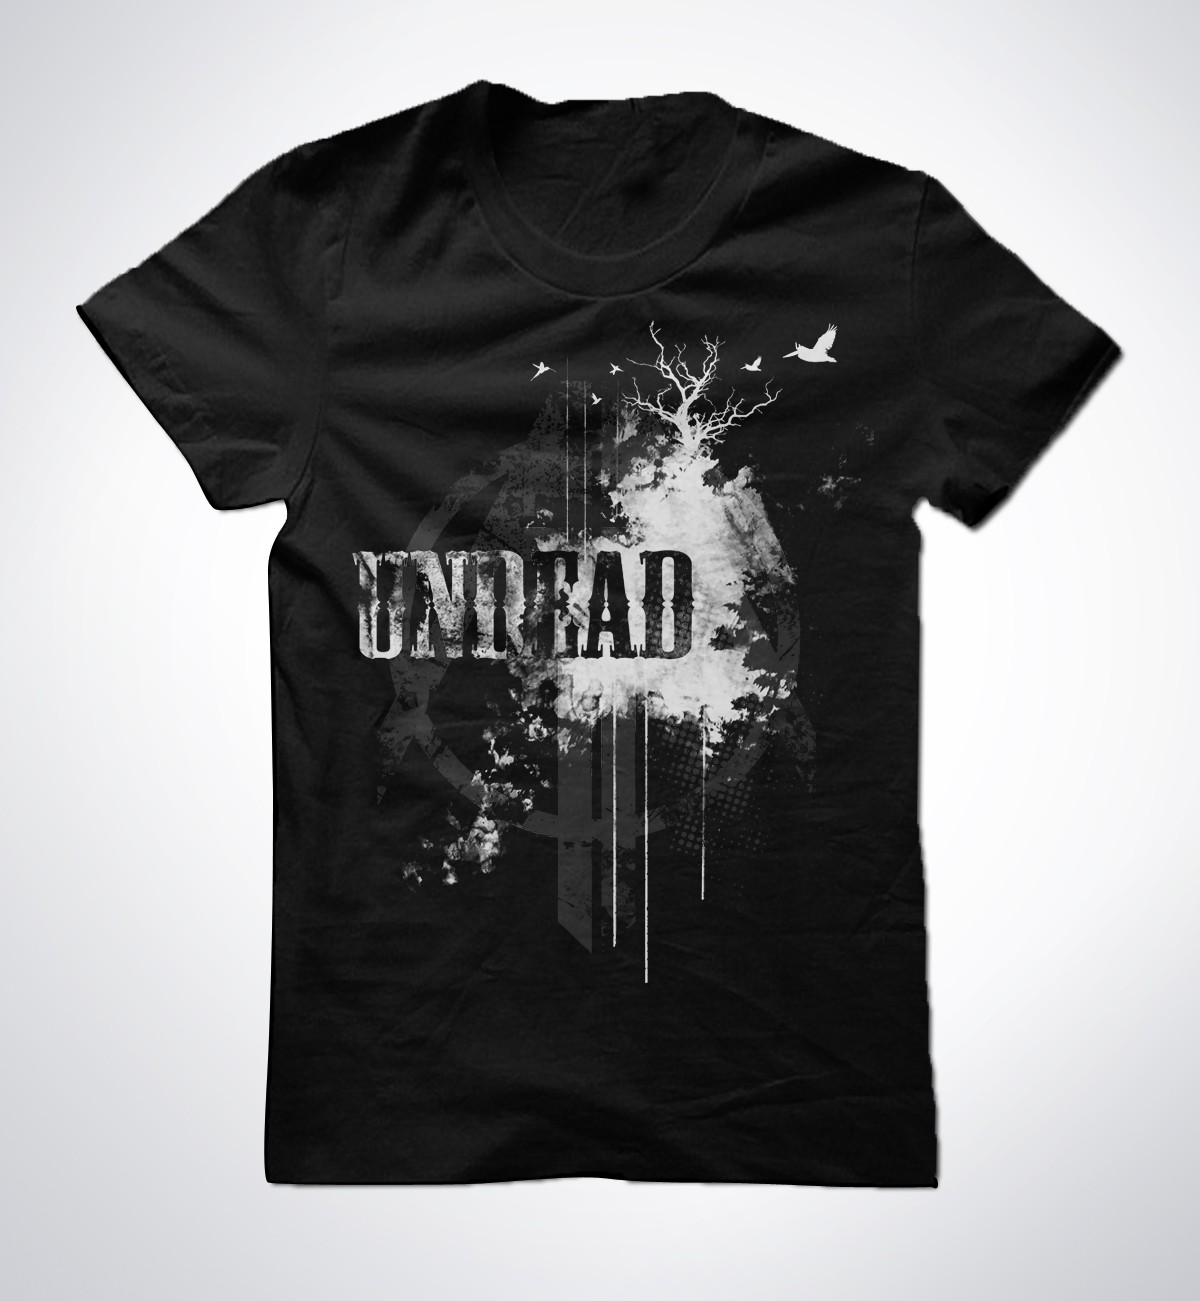 t-shirt design for All The Above Clothing